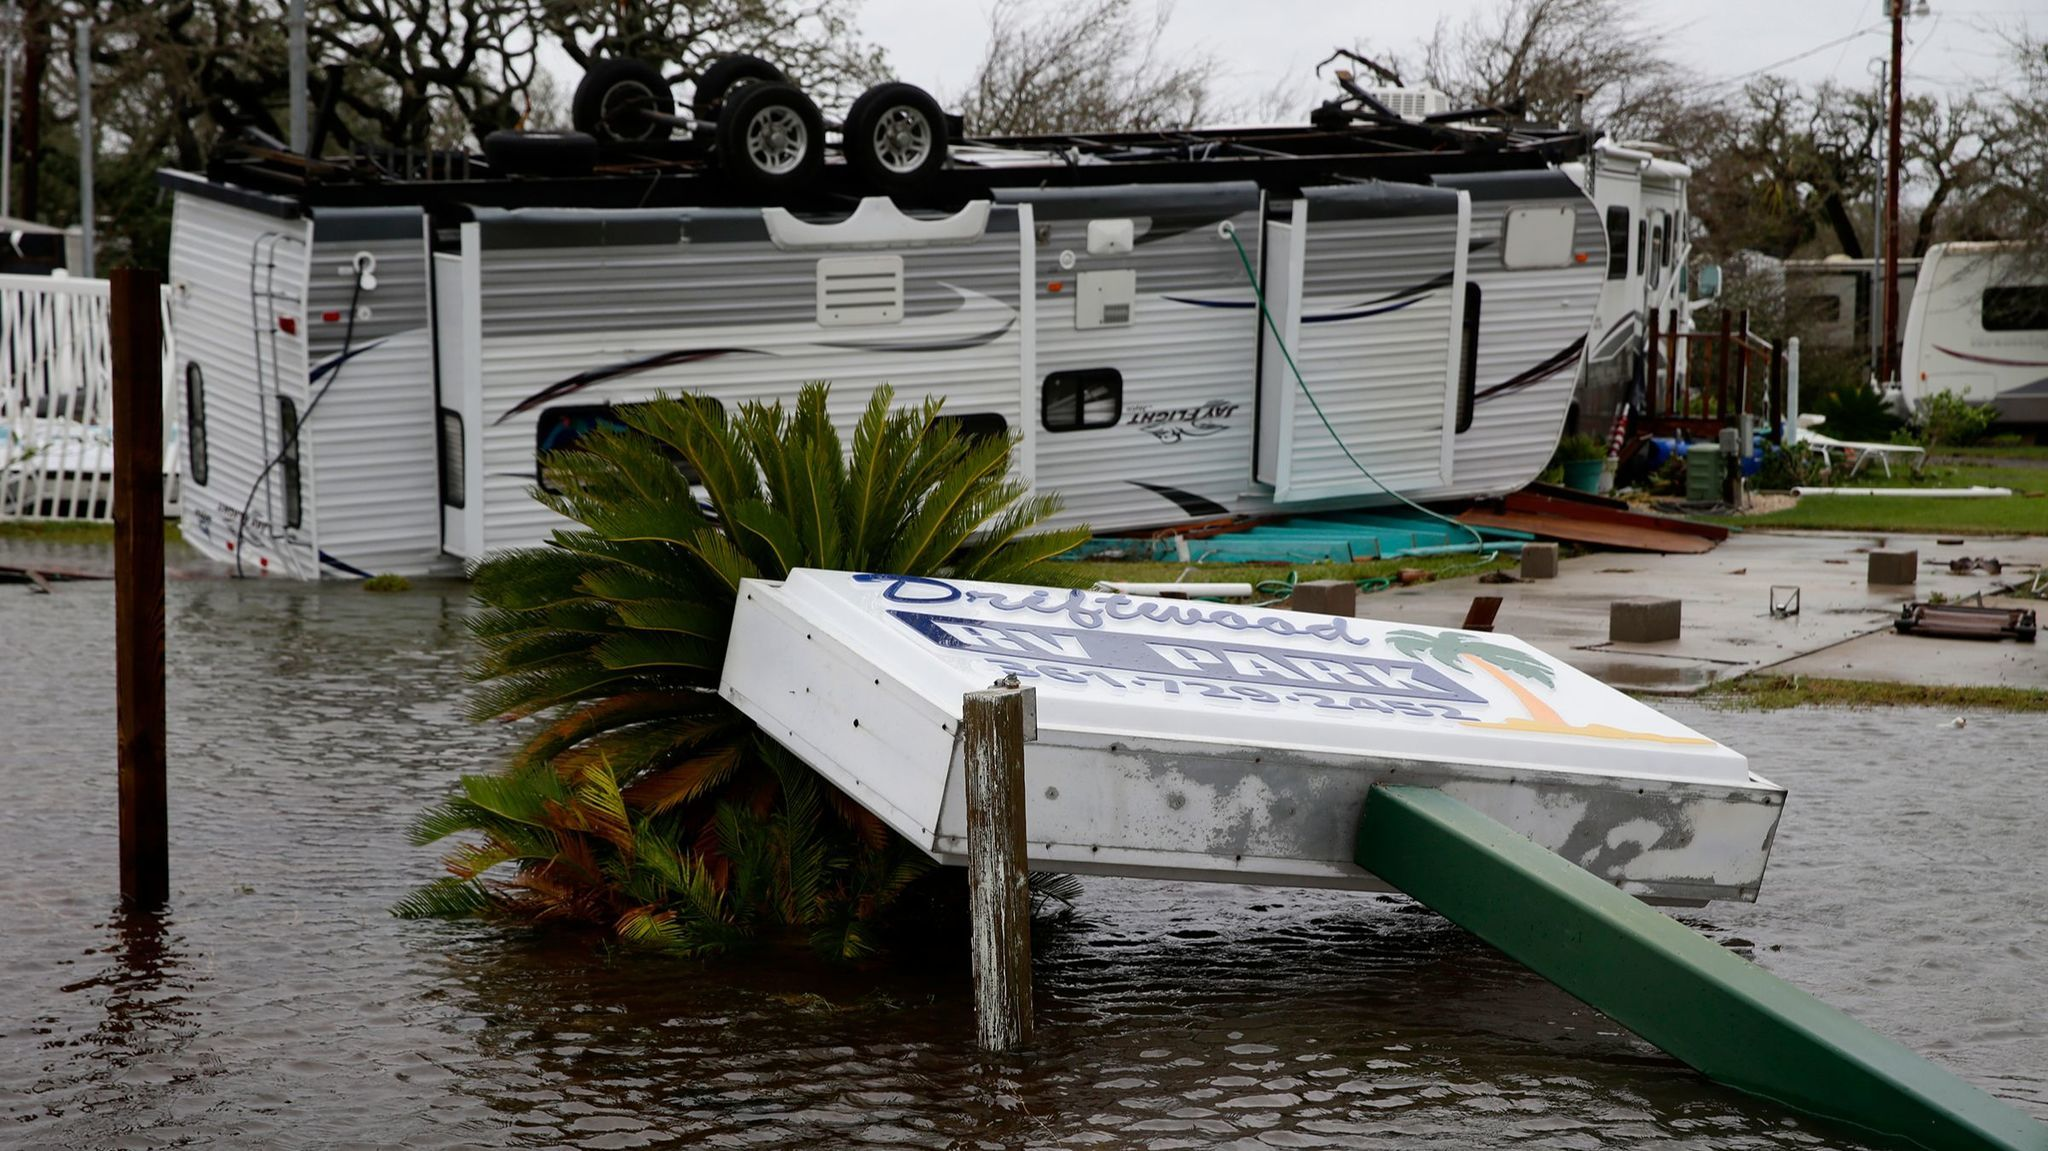 Motor homes are left strewn about the Driftwood RV Park the day after Hurricane Harvey struck Rockport, Texas.